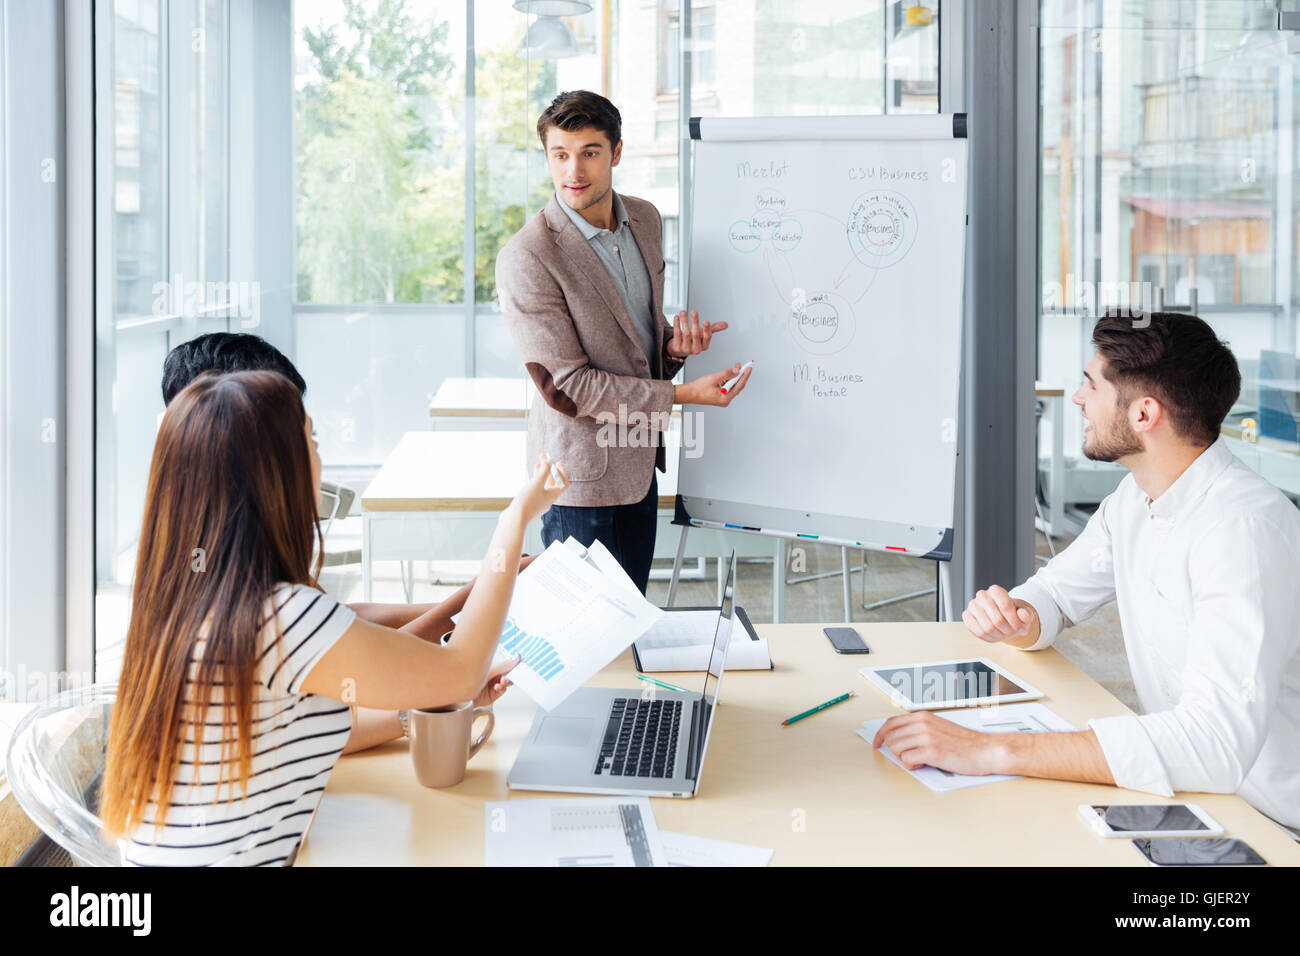 Confident handsome young businessman giving presentation using flipchart in office - Stock Image